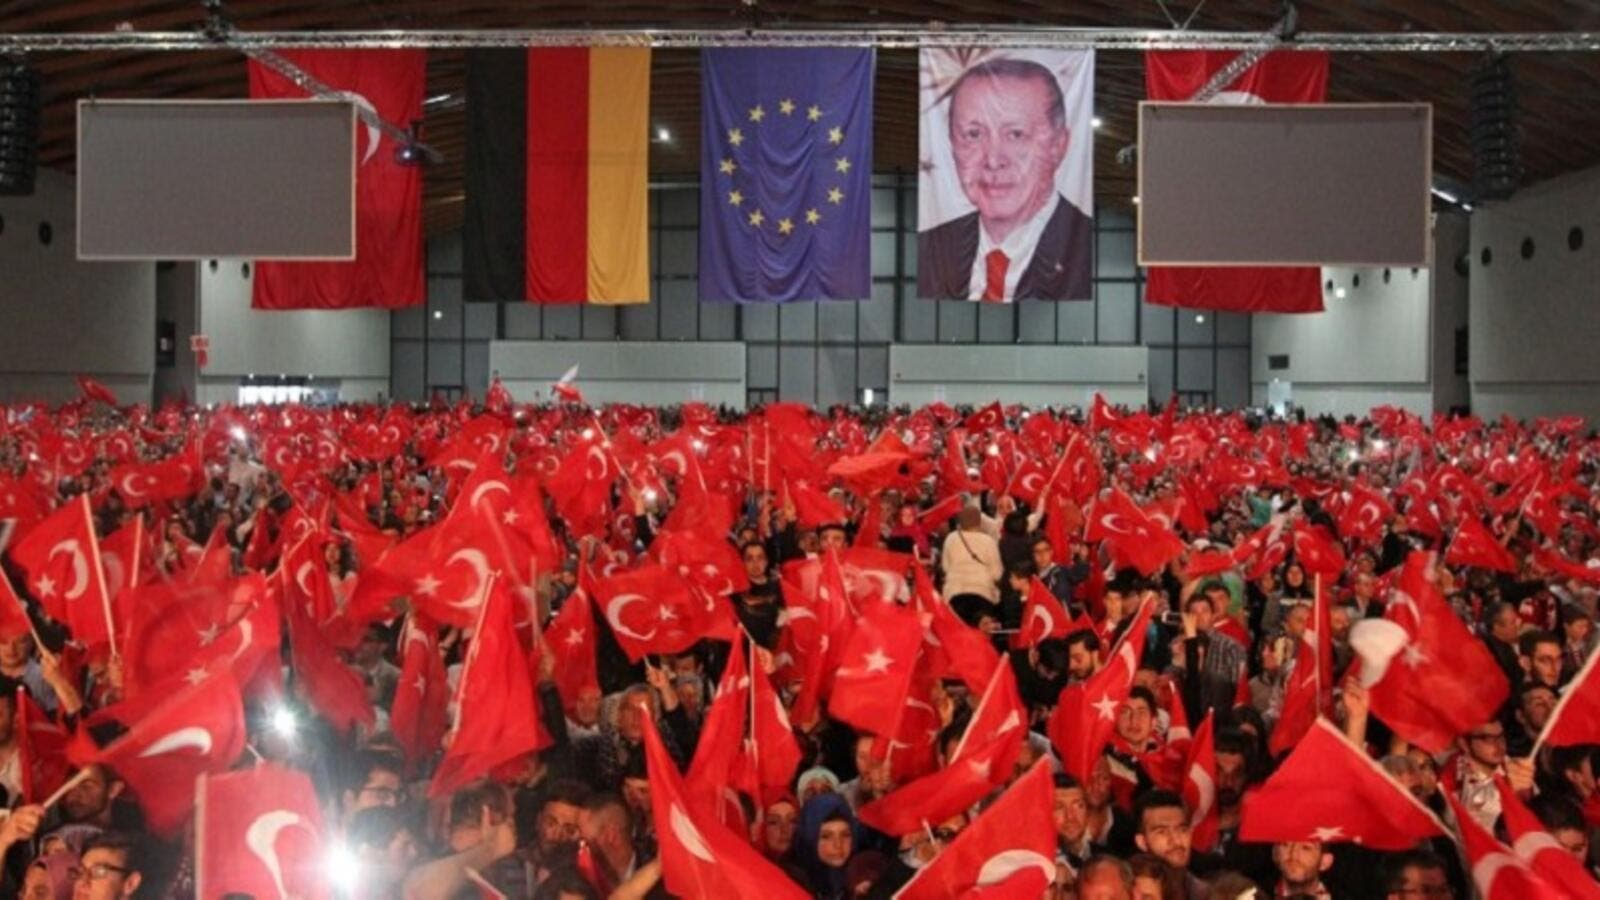 Supporters of Turkish President Recep Tayyip Erdogan wave Turkish flags. (AFP/File)